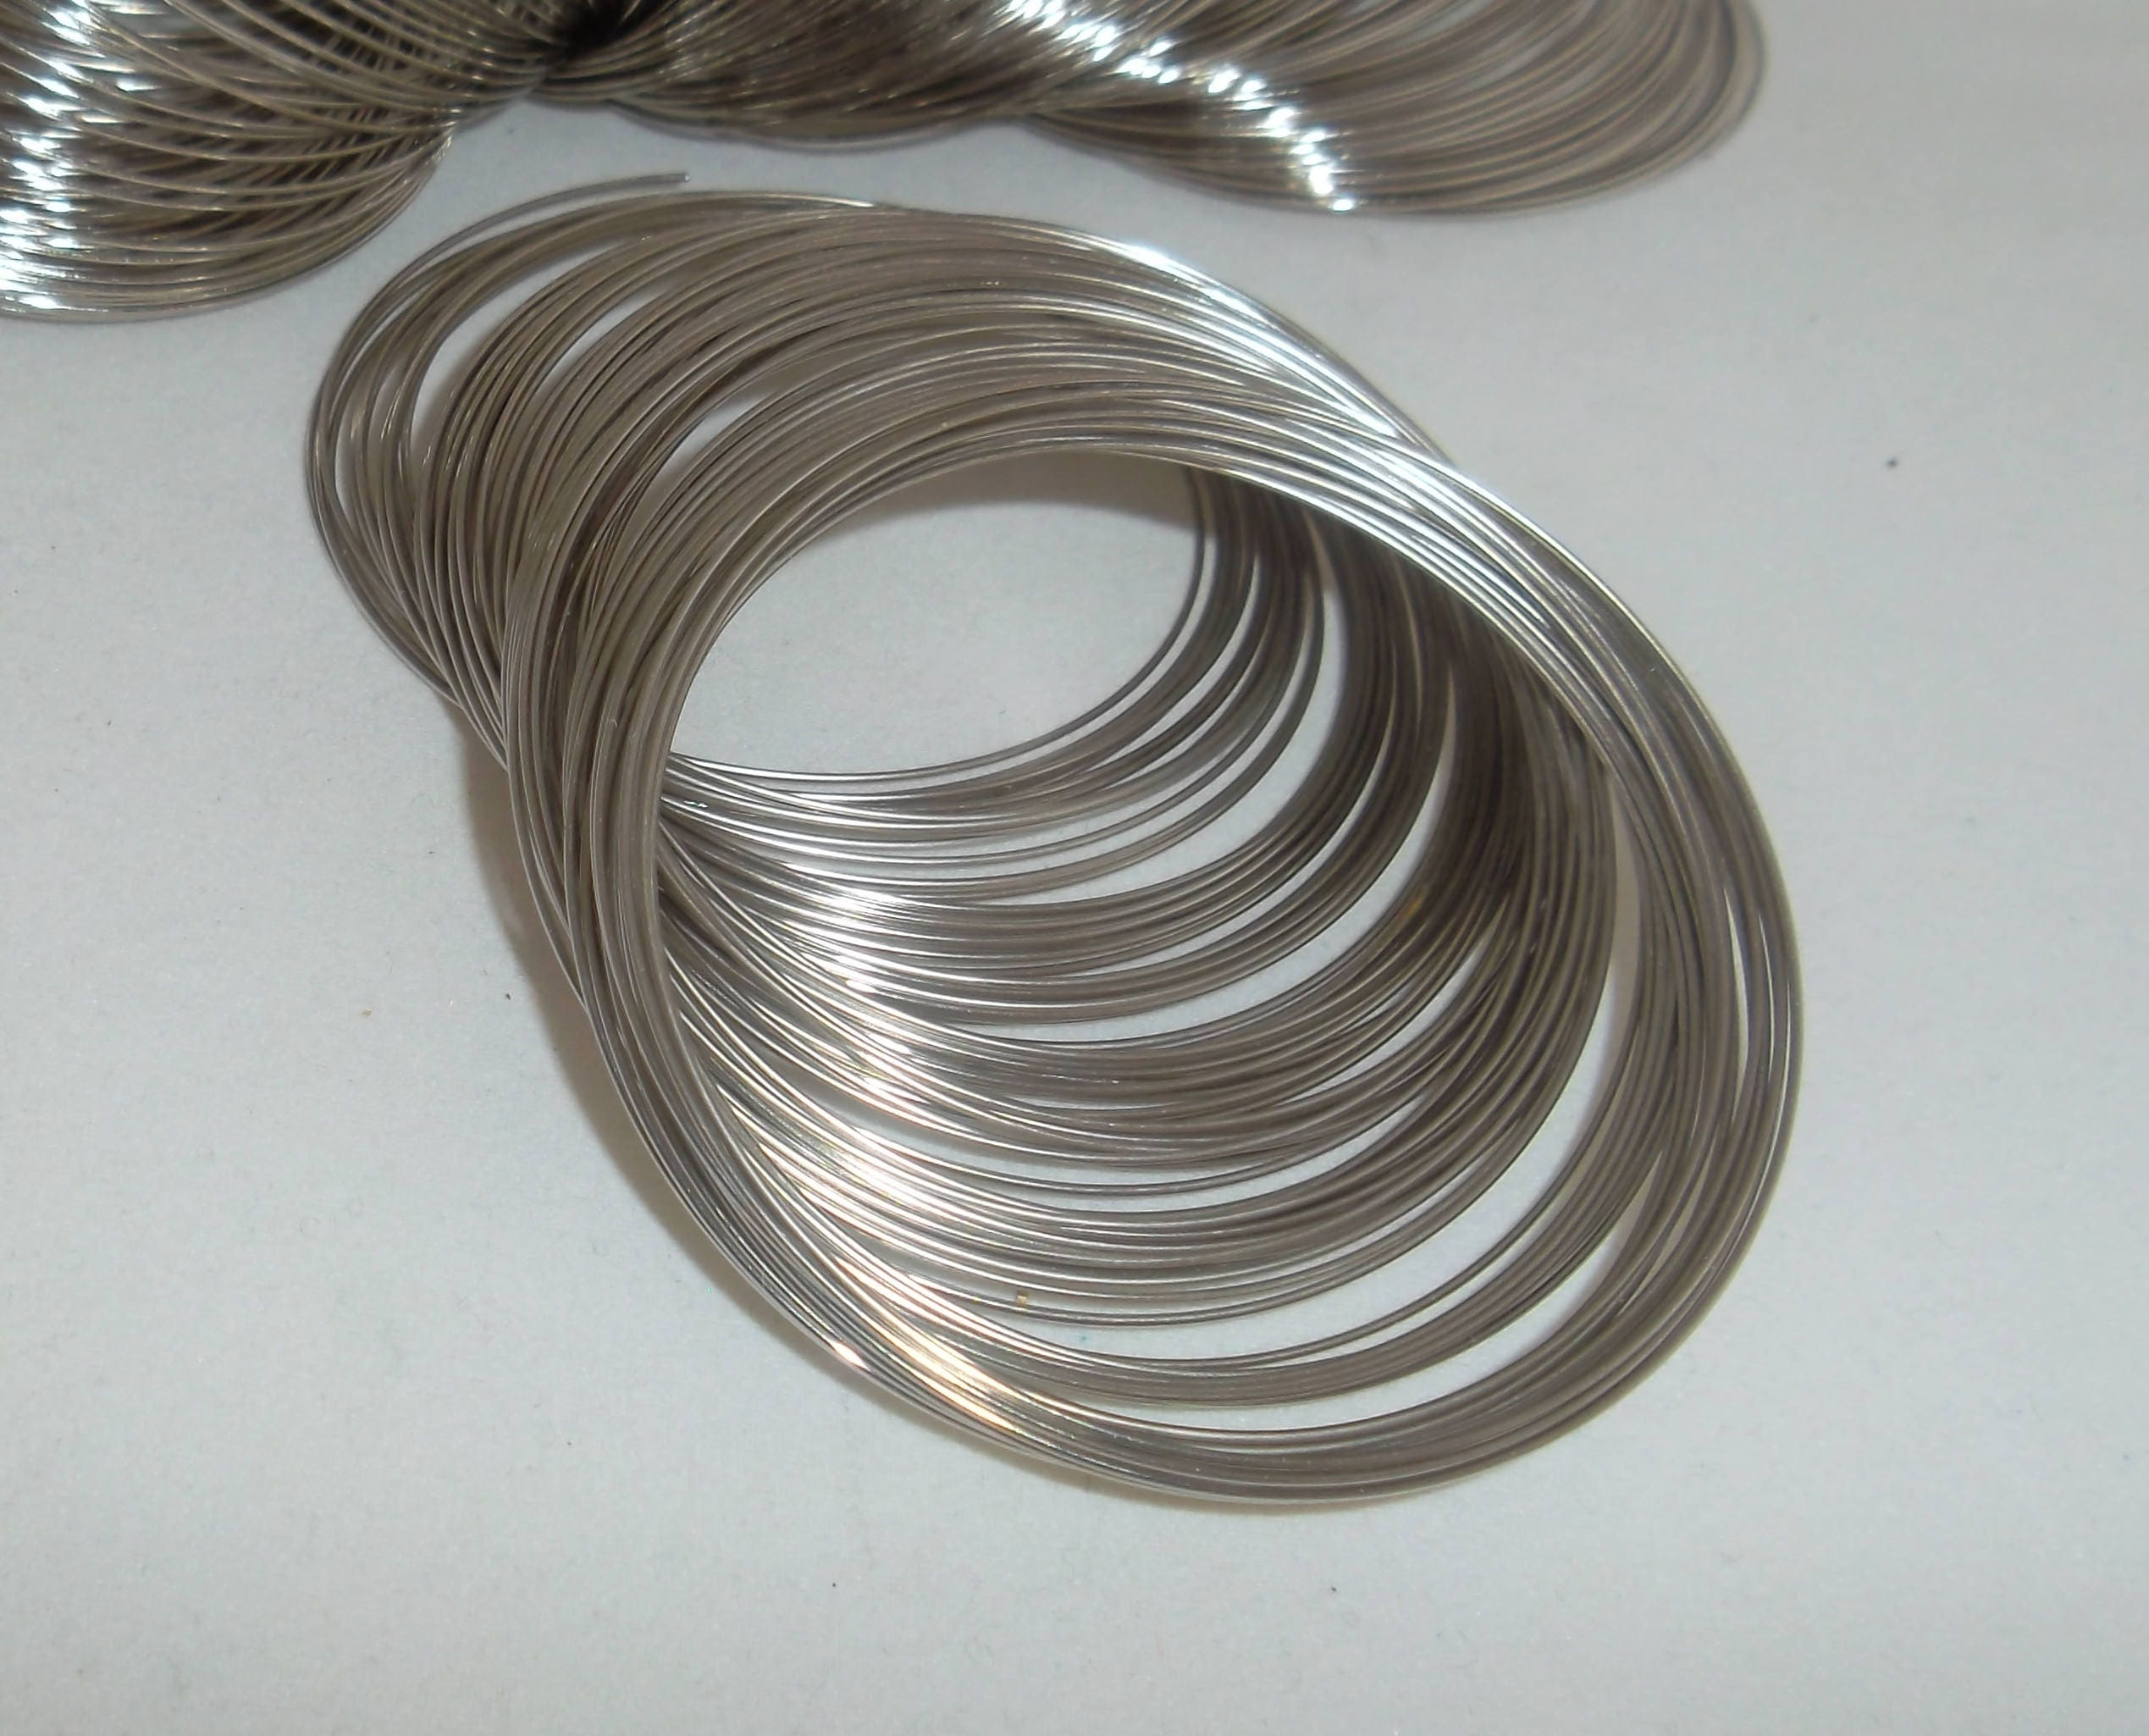 1 Pc Coil Memory Wire Loop Beading Craft Ring Size Silver Tone 20mm Diameter